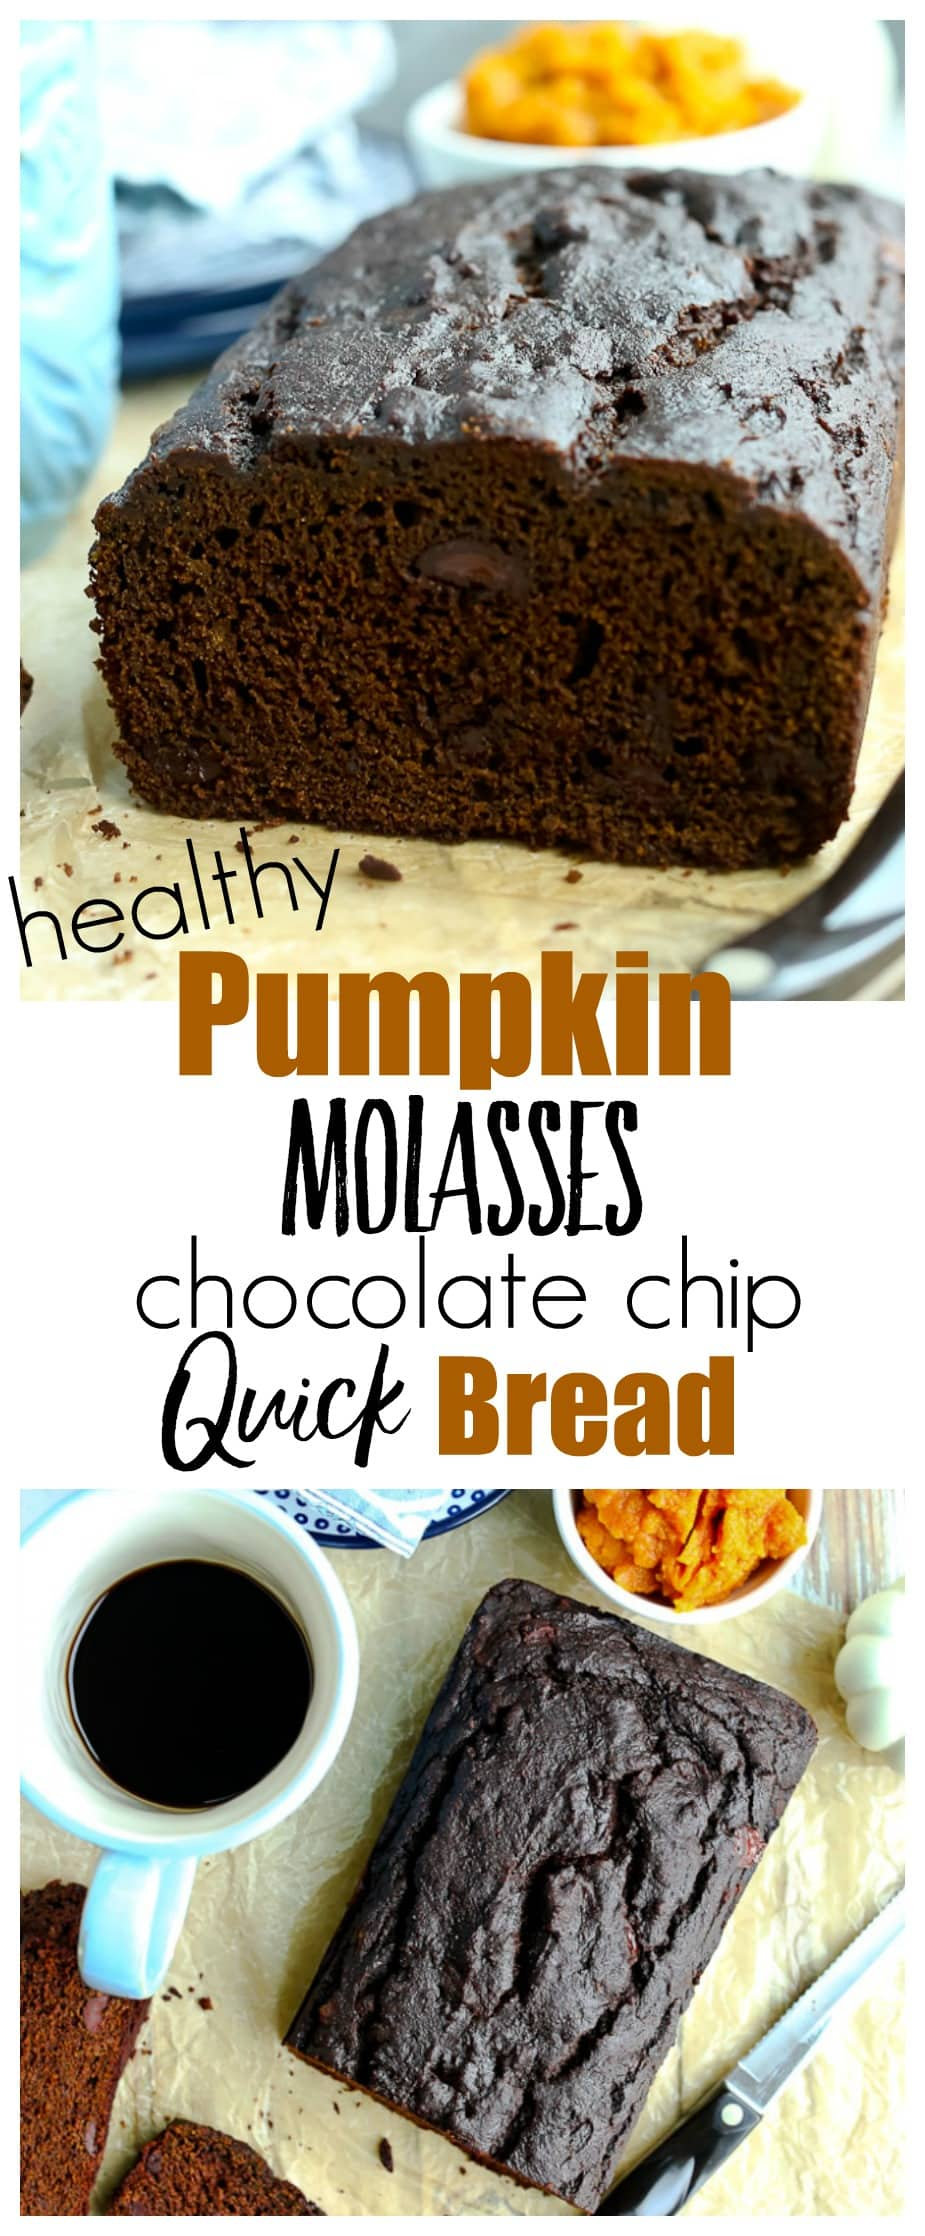 Pumpkin Molasses Quickbread with chocolate chips recipe. Perfect for fall and winter weather--this is a healthy recipe that is great for breakfast, snack, or dessert. Whole grains and no refined sugar